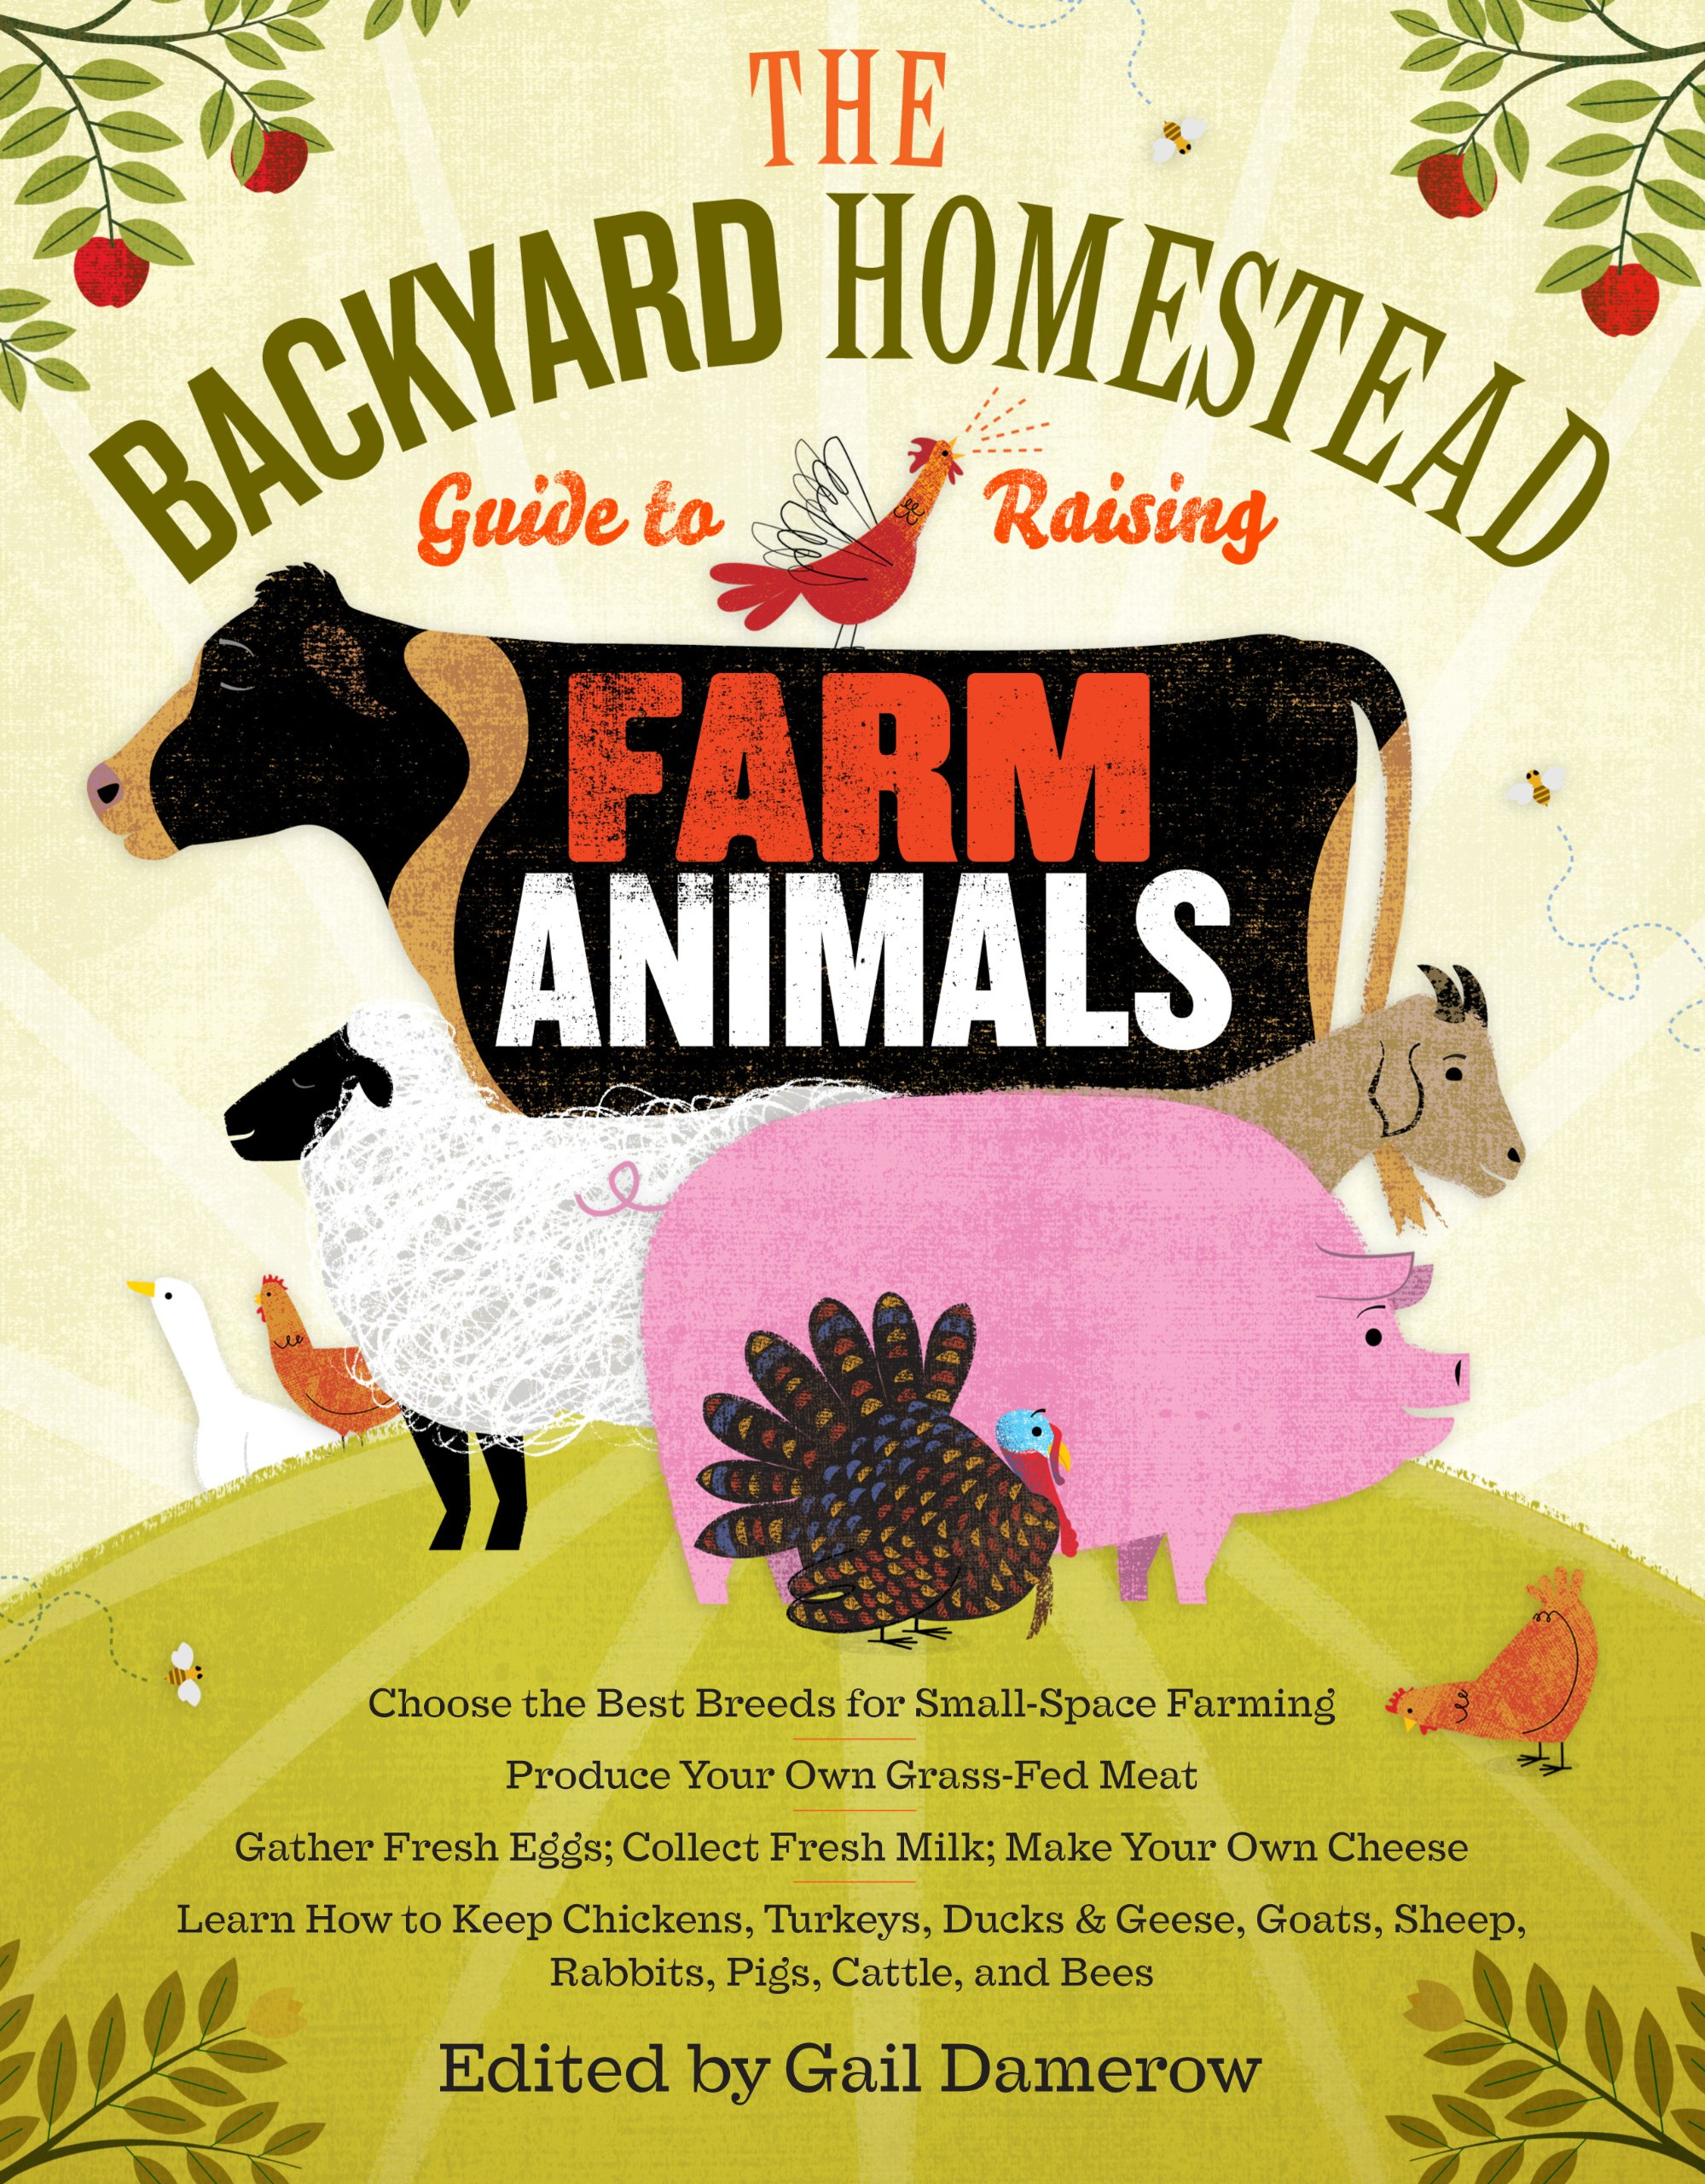 Backyard Homestead Guide Raising Animals product image